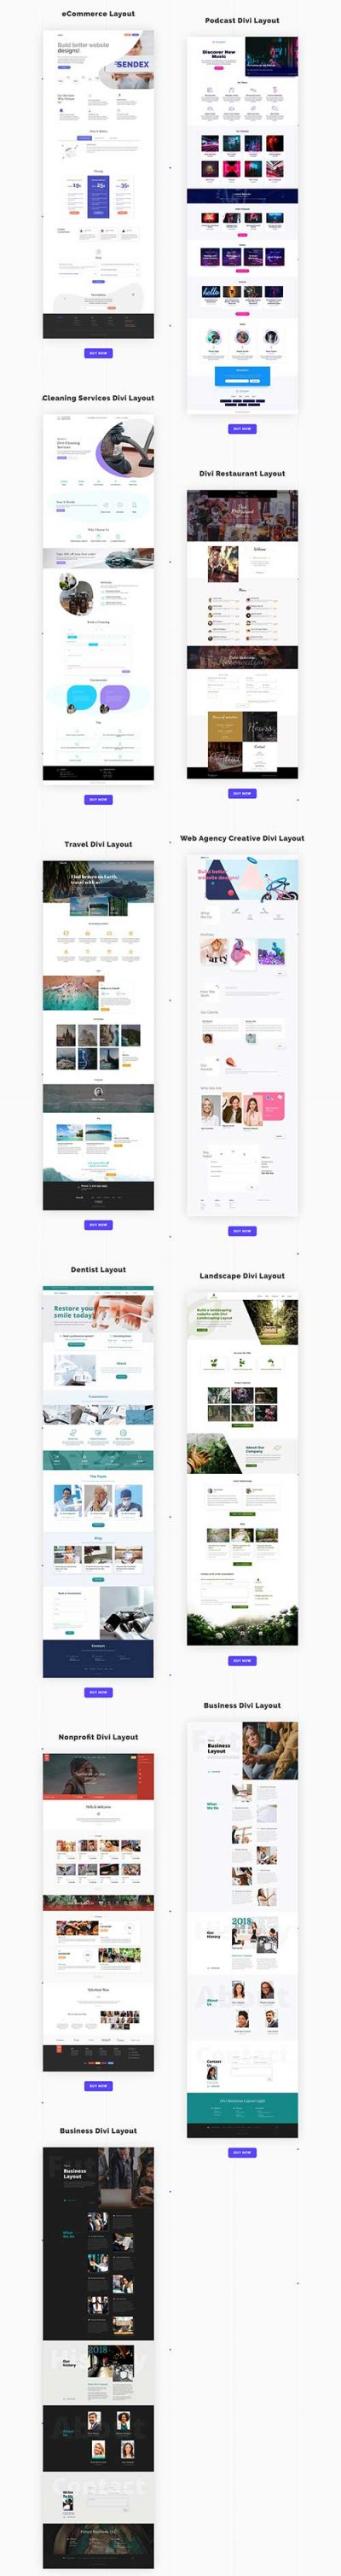 divi space layouts bundle